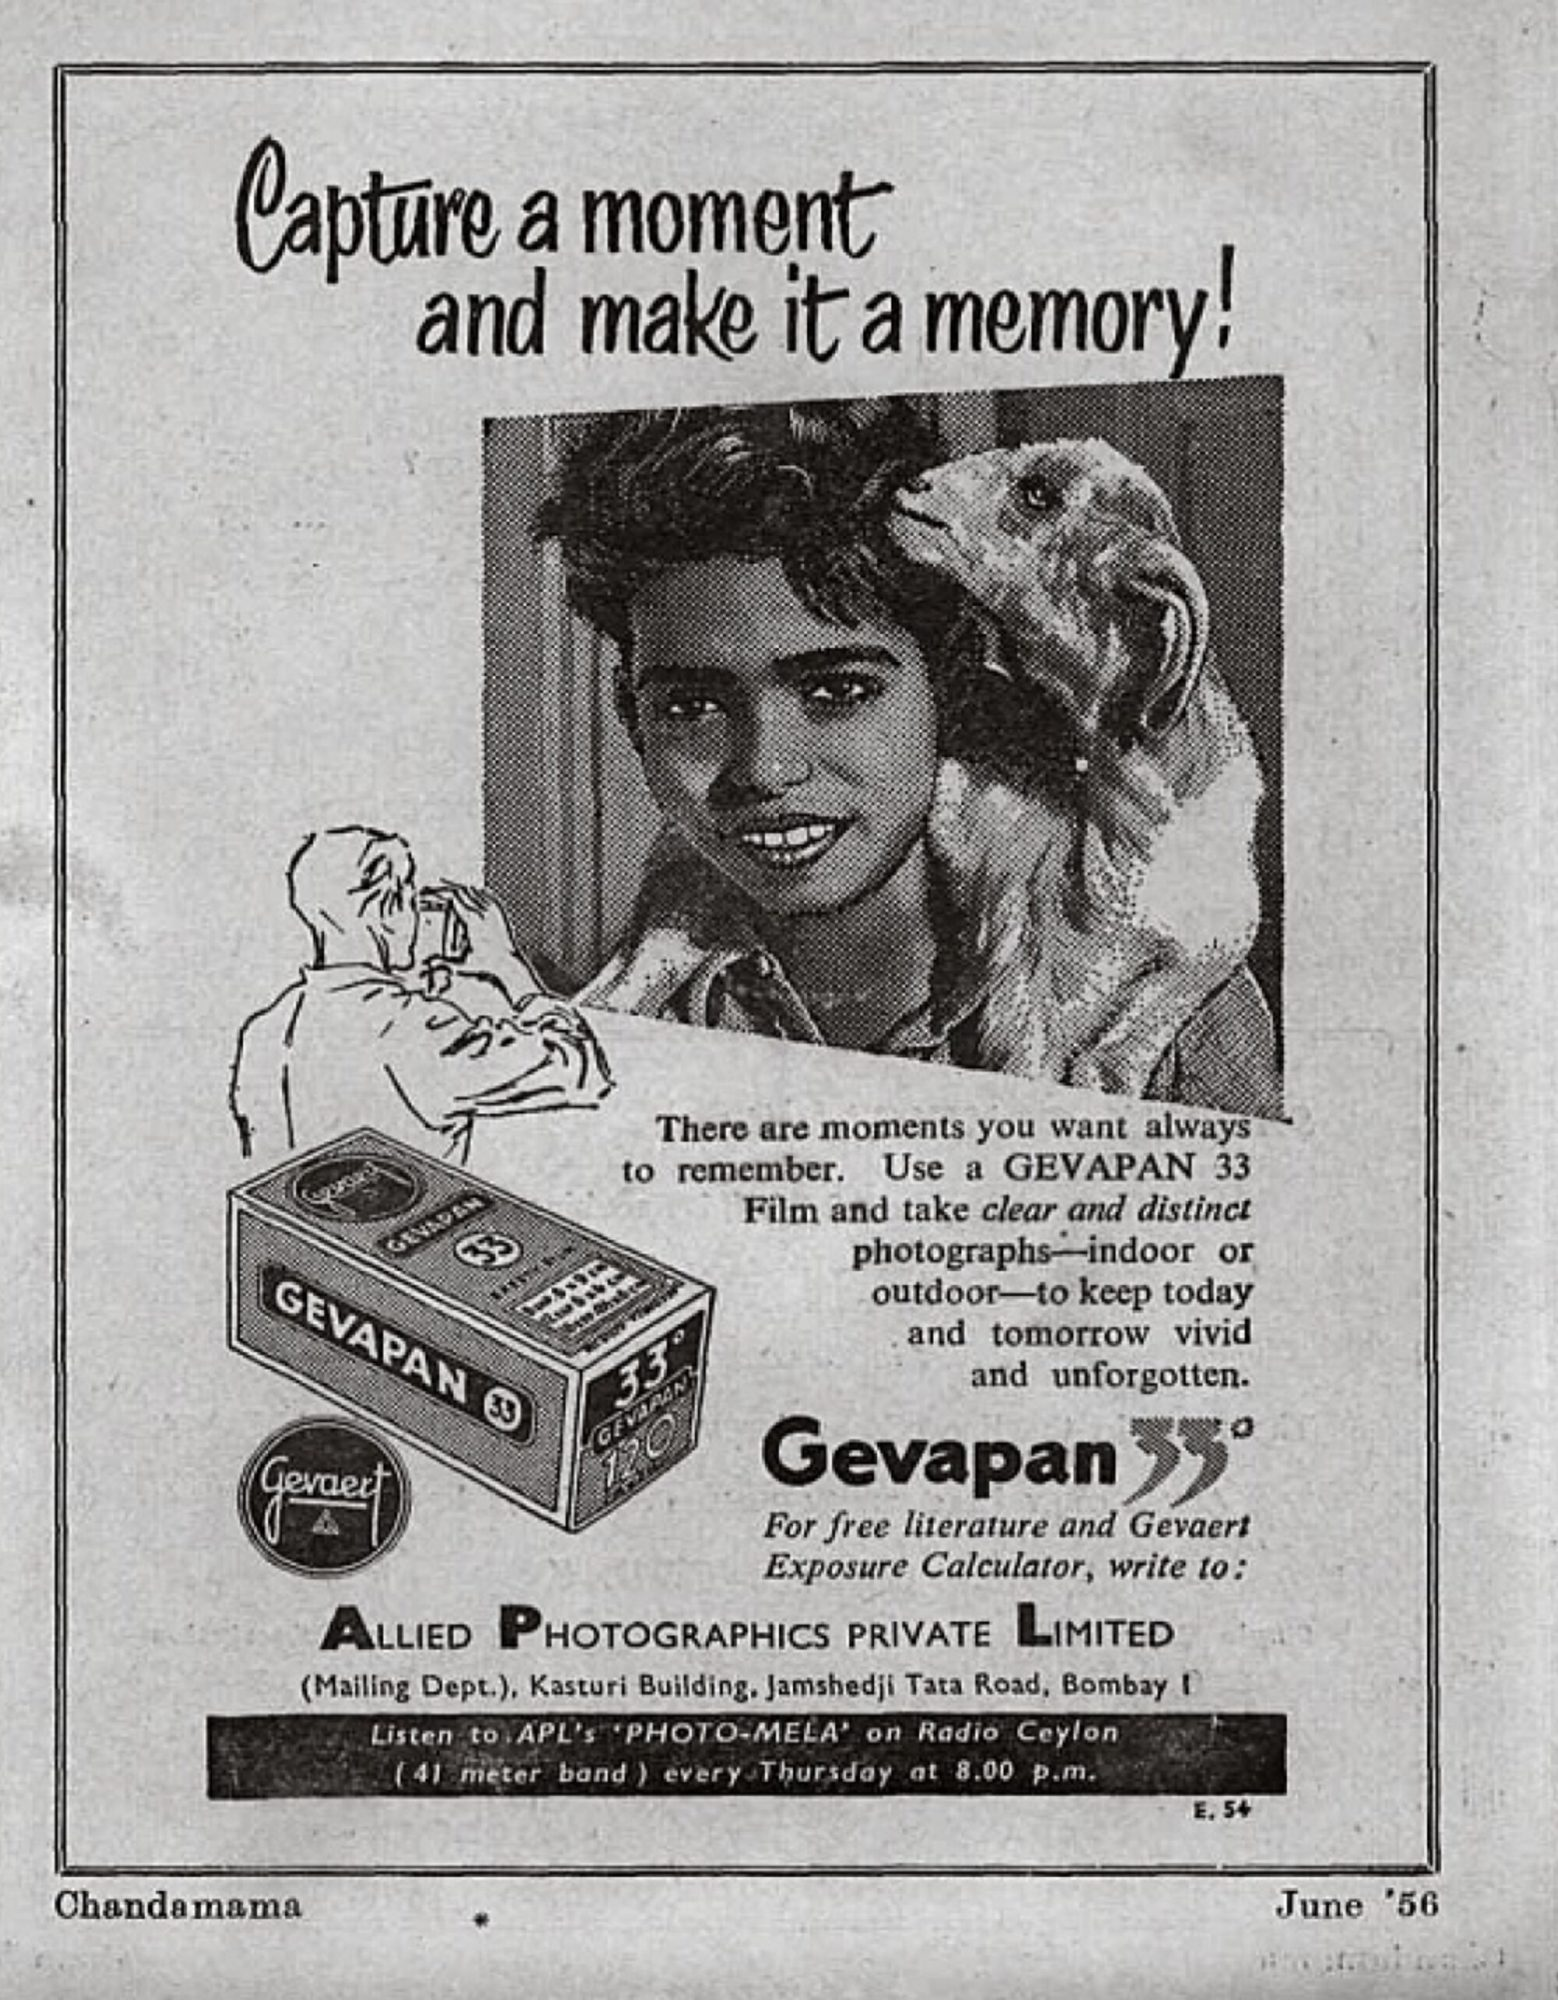 An advertisement for a film roll